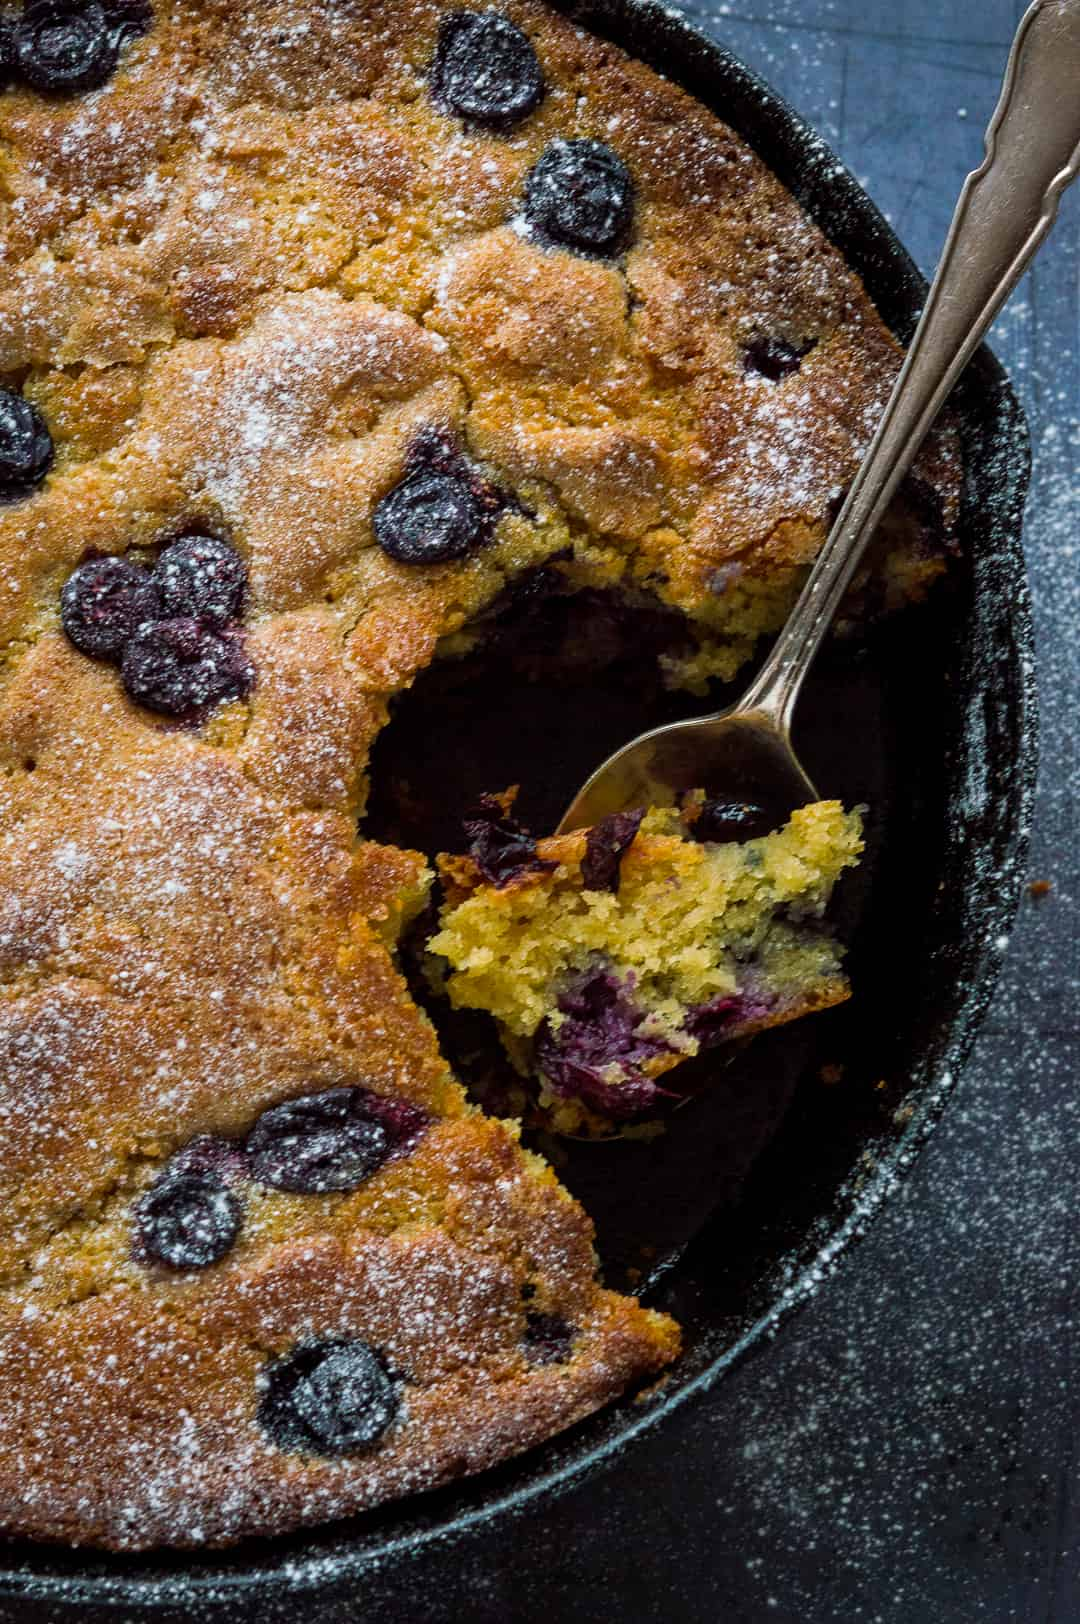 A close up of blueberry cornmeal skillet cake, served straight from the skillet